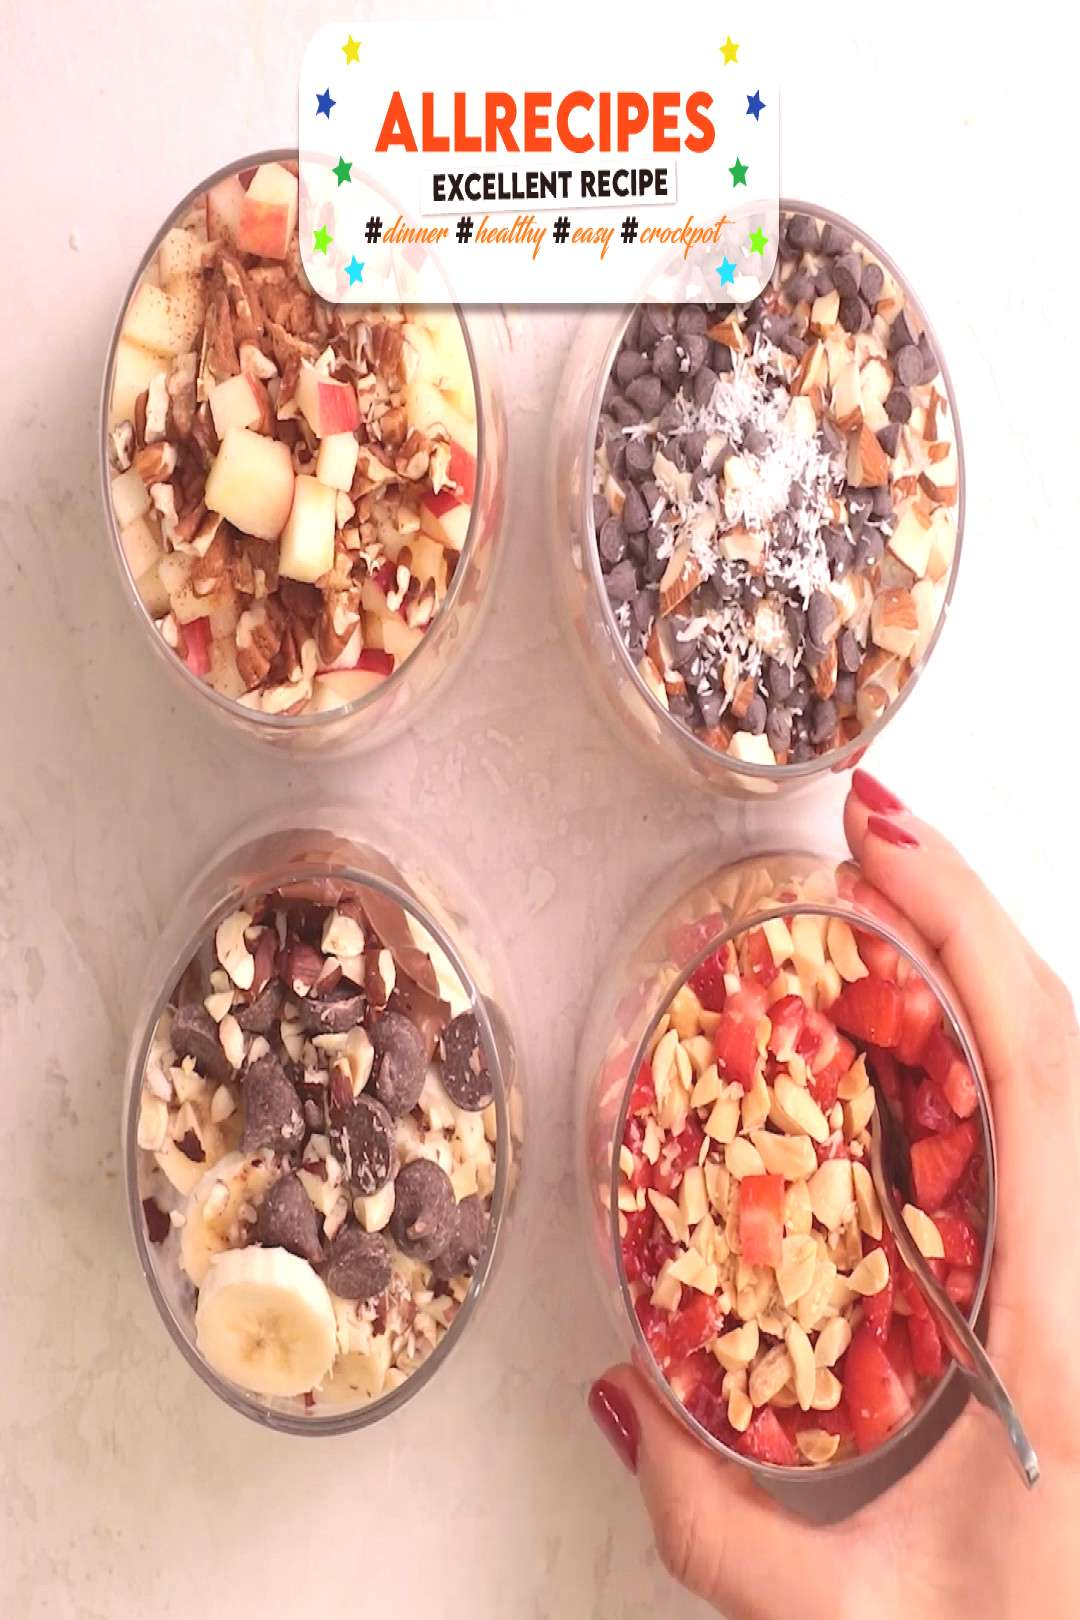 Easy Overnight Oats 4 Ways - Recipe Video - - This easy overnight oats recipe is a healthy simple b